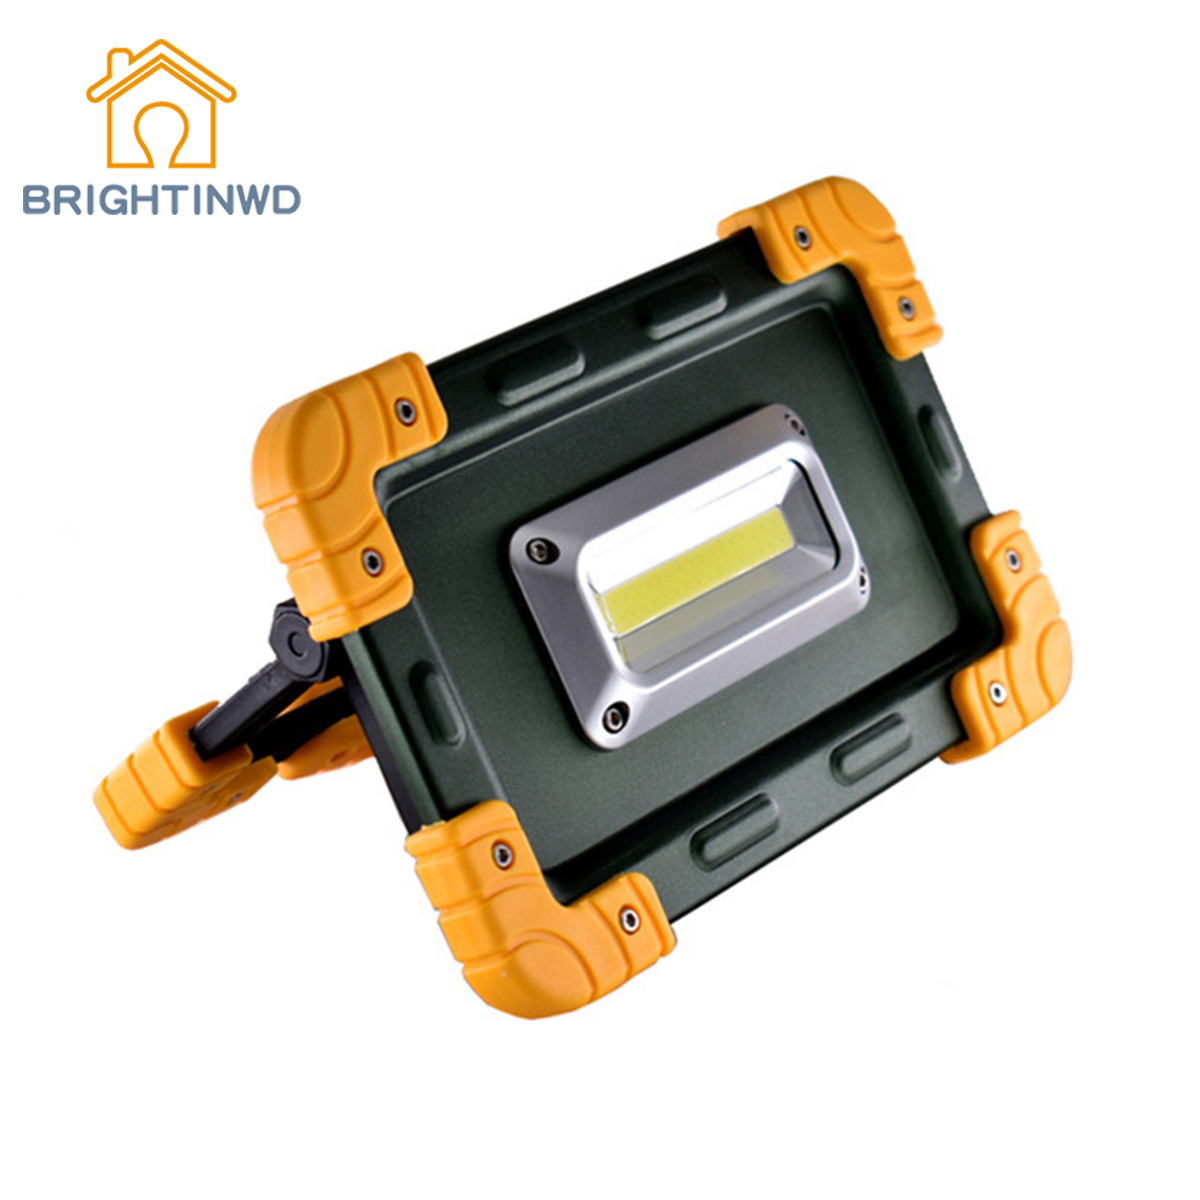 COB Led 750 Lumens Portable Floodlight Powerbank Lamp For Hiking Tent Light 20W LED Camping Lantern Rechargeable Camping Light